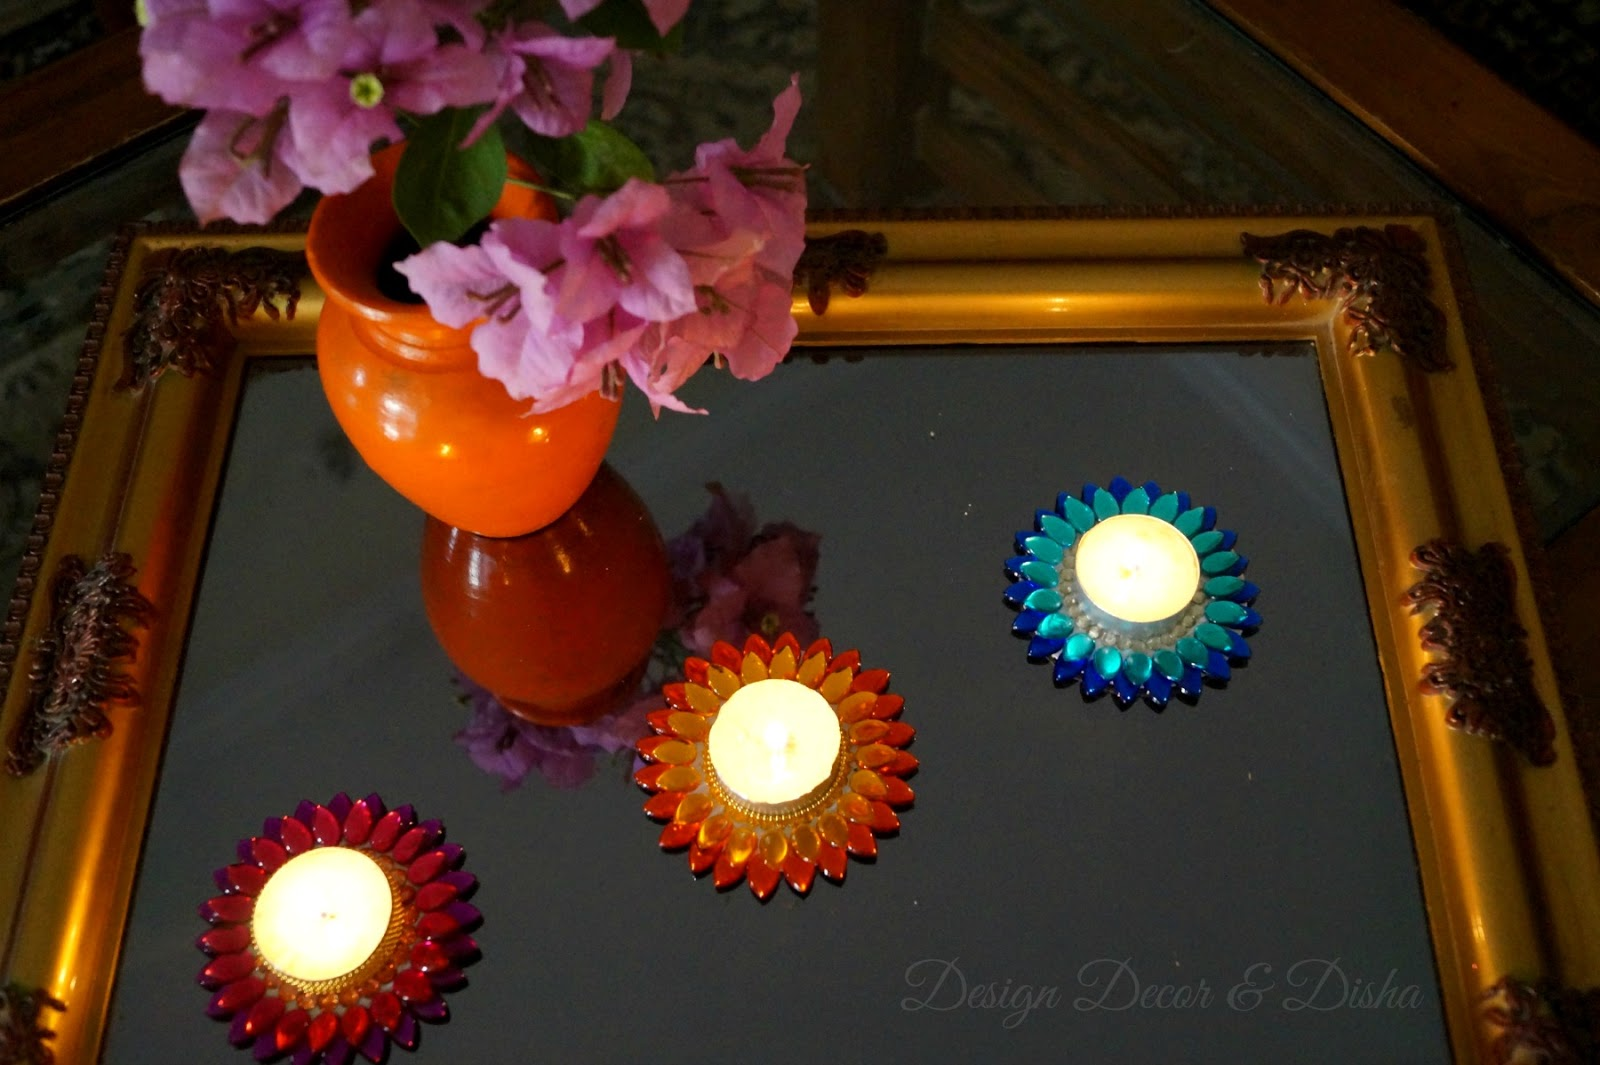 Diwali Decoration Ideas And Crafts Design Decor And Disha Diwali Craft Idea Lotus Tealights Diy